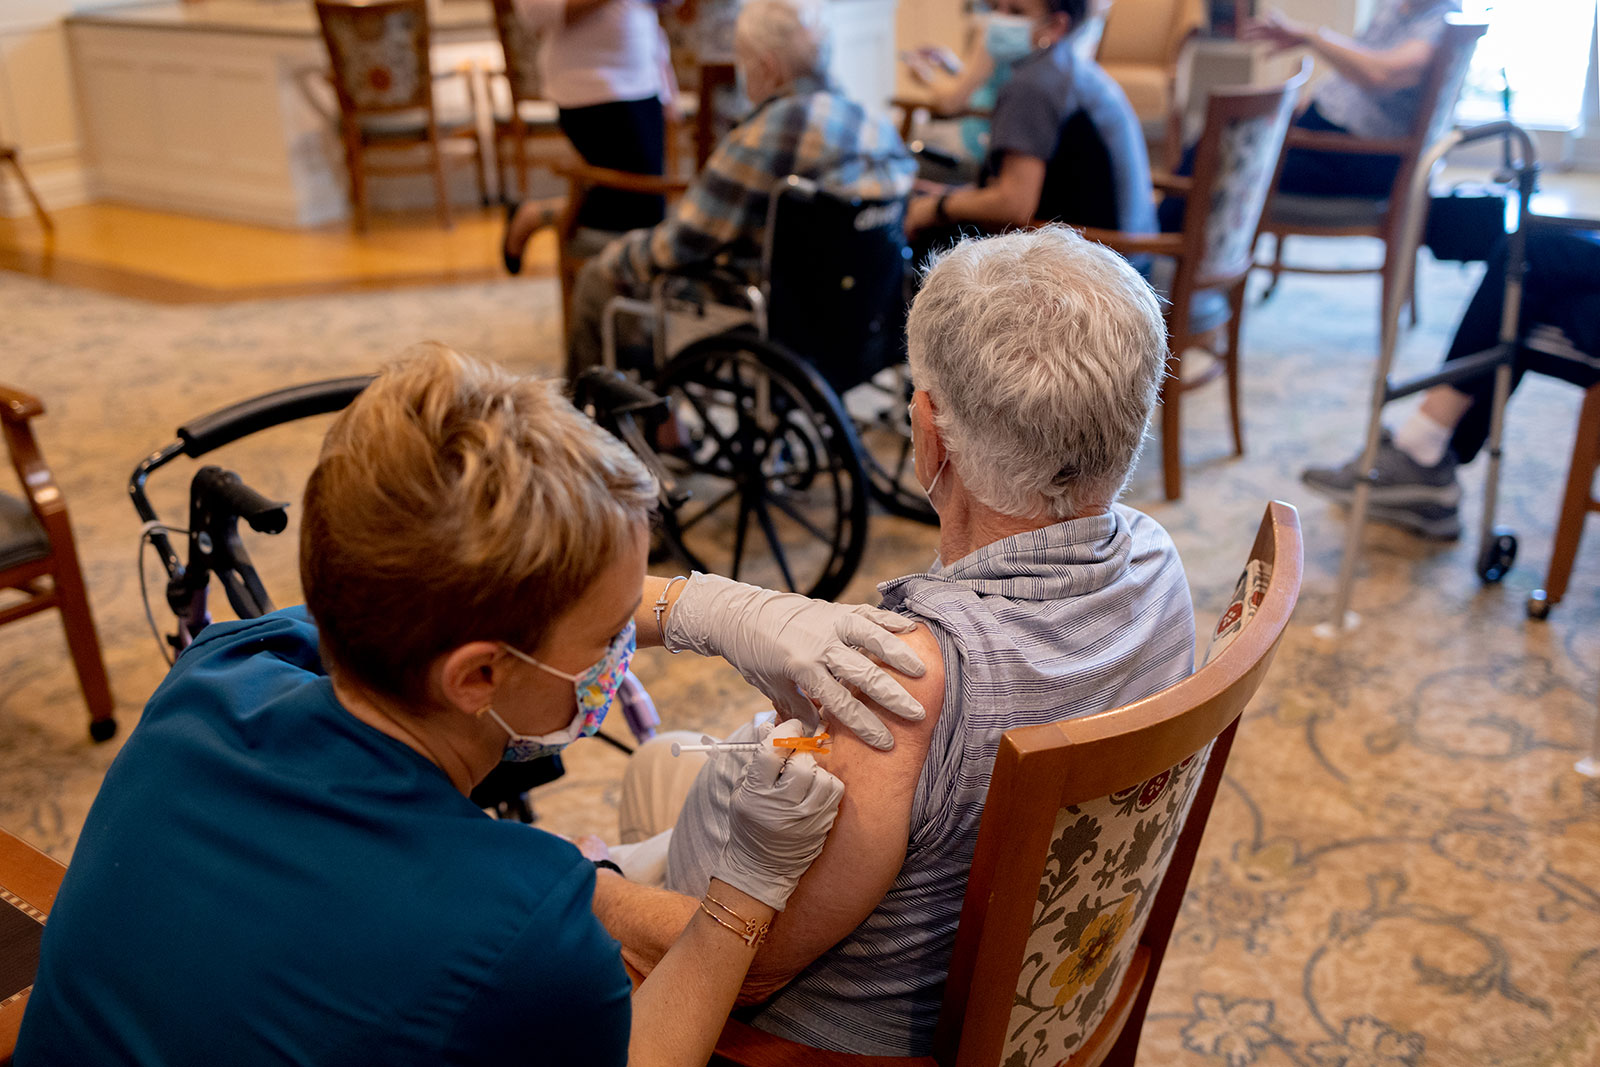 A healthcare worker administers a Covid-19 booster shot at a senior living facility in Worcester, Pennsylvania.